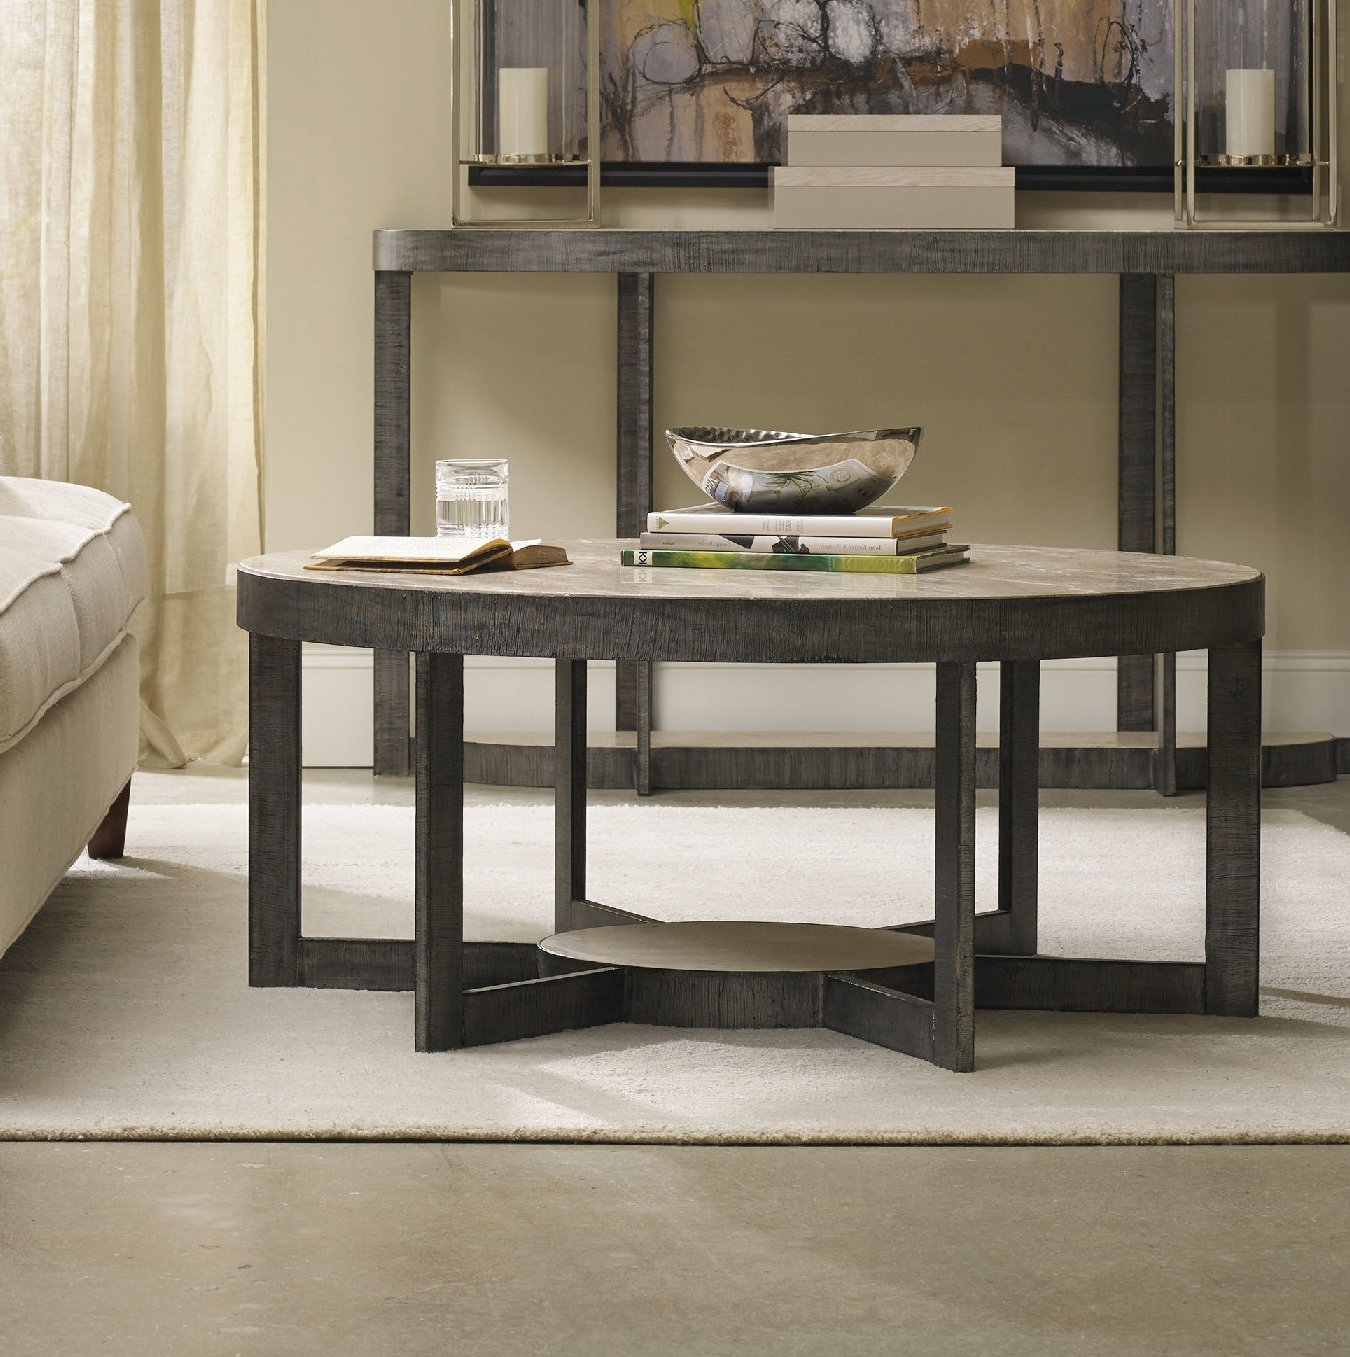 Hooker Furniture Mill Valley Coffee Table | Wayfair With Regard To Mill Coffee Tables (Image 12 of 30)